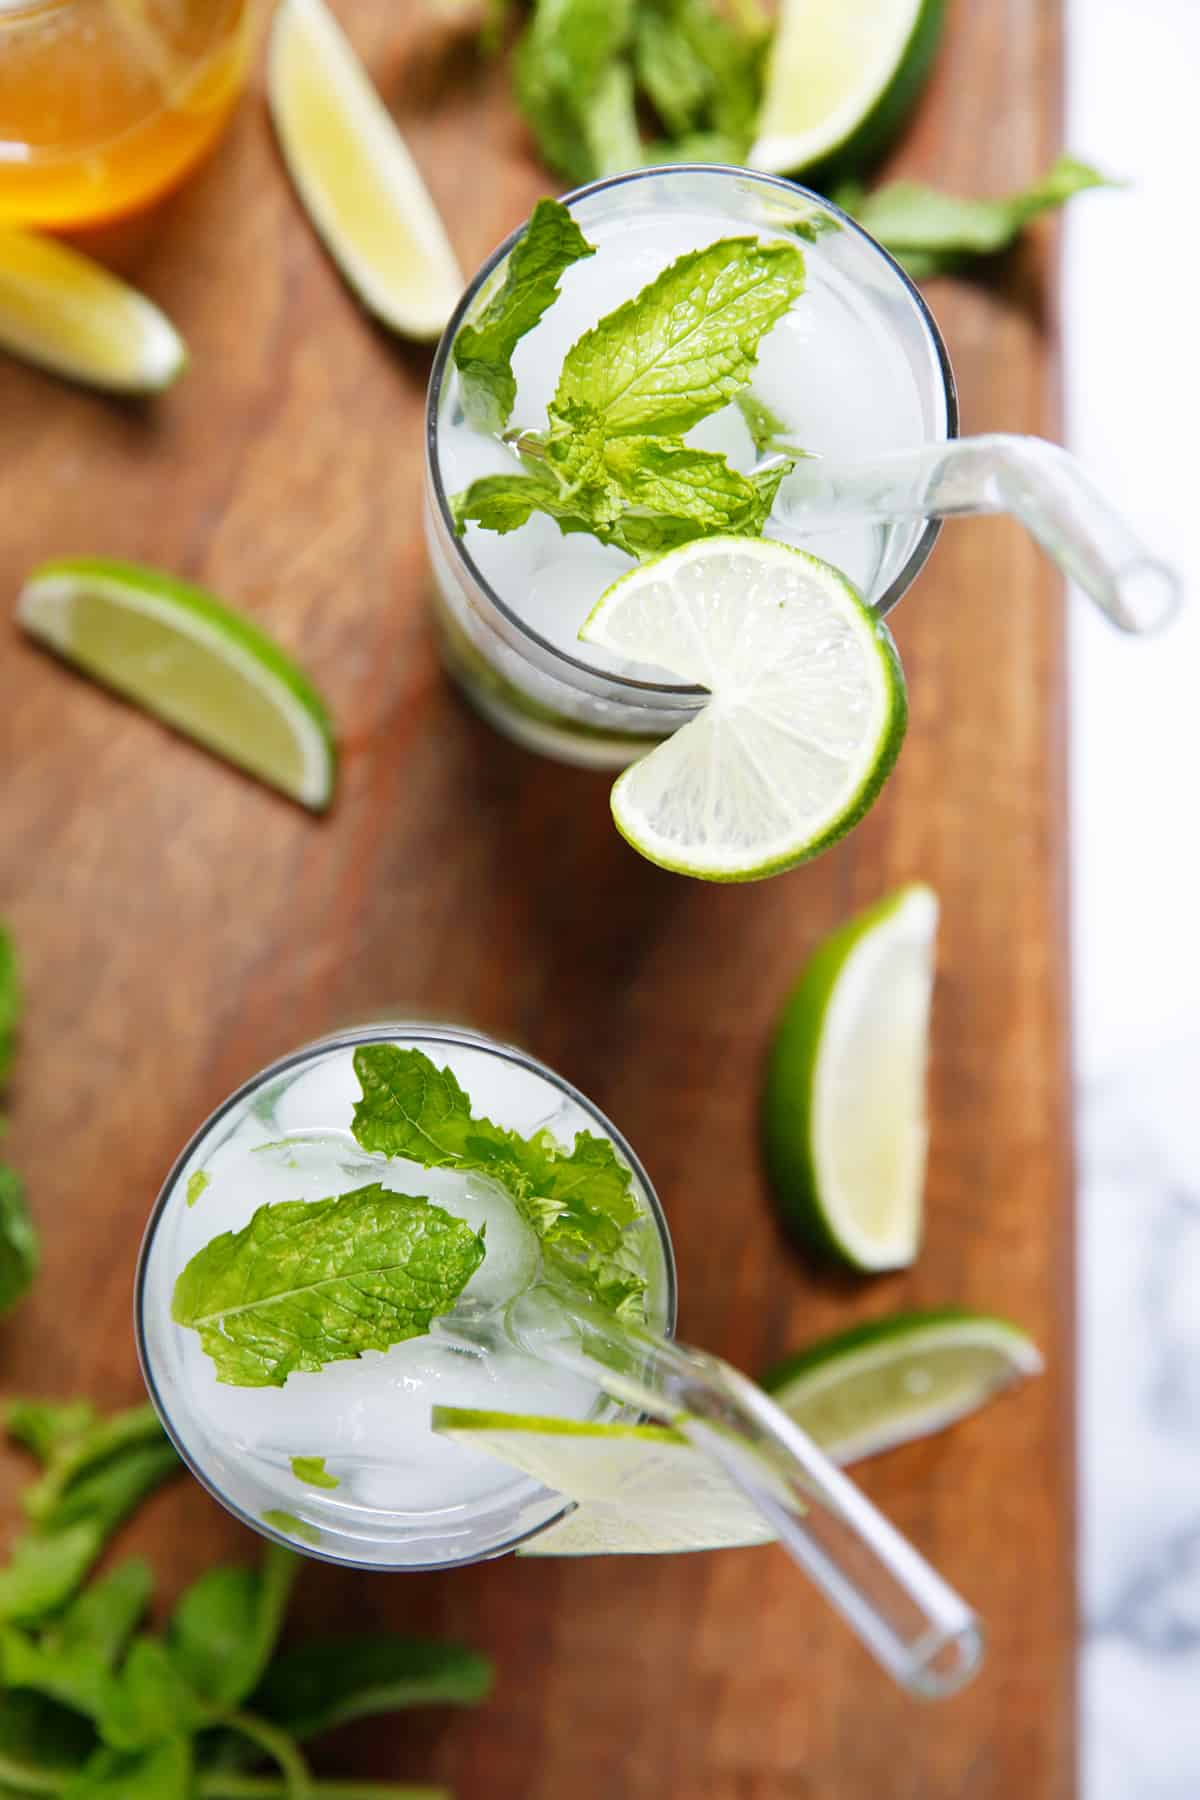 Mojito recipe on a cutting board surrounded by limes